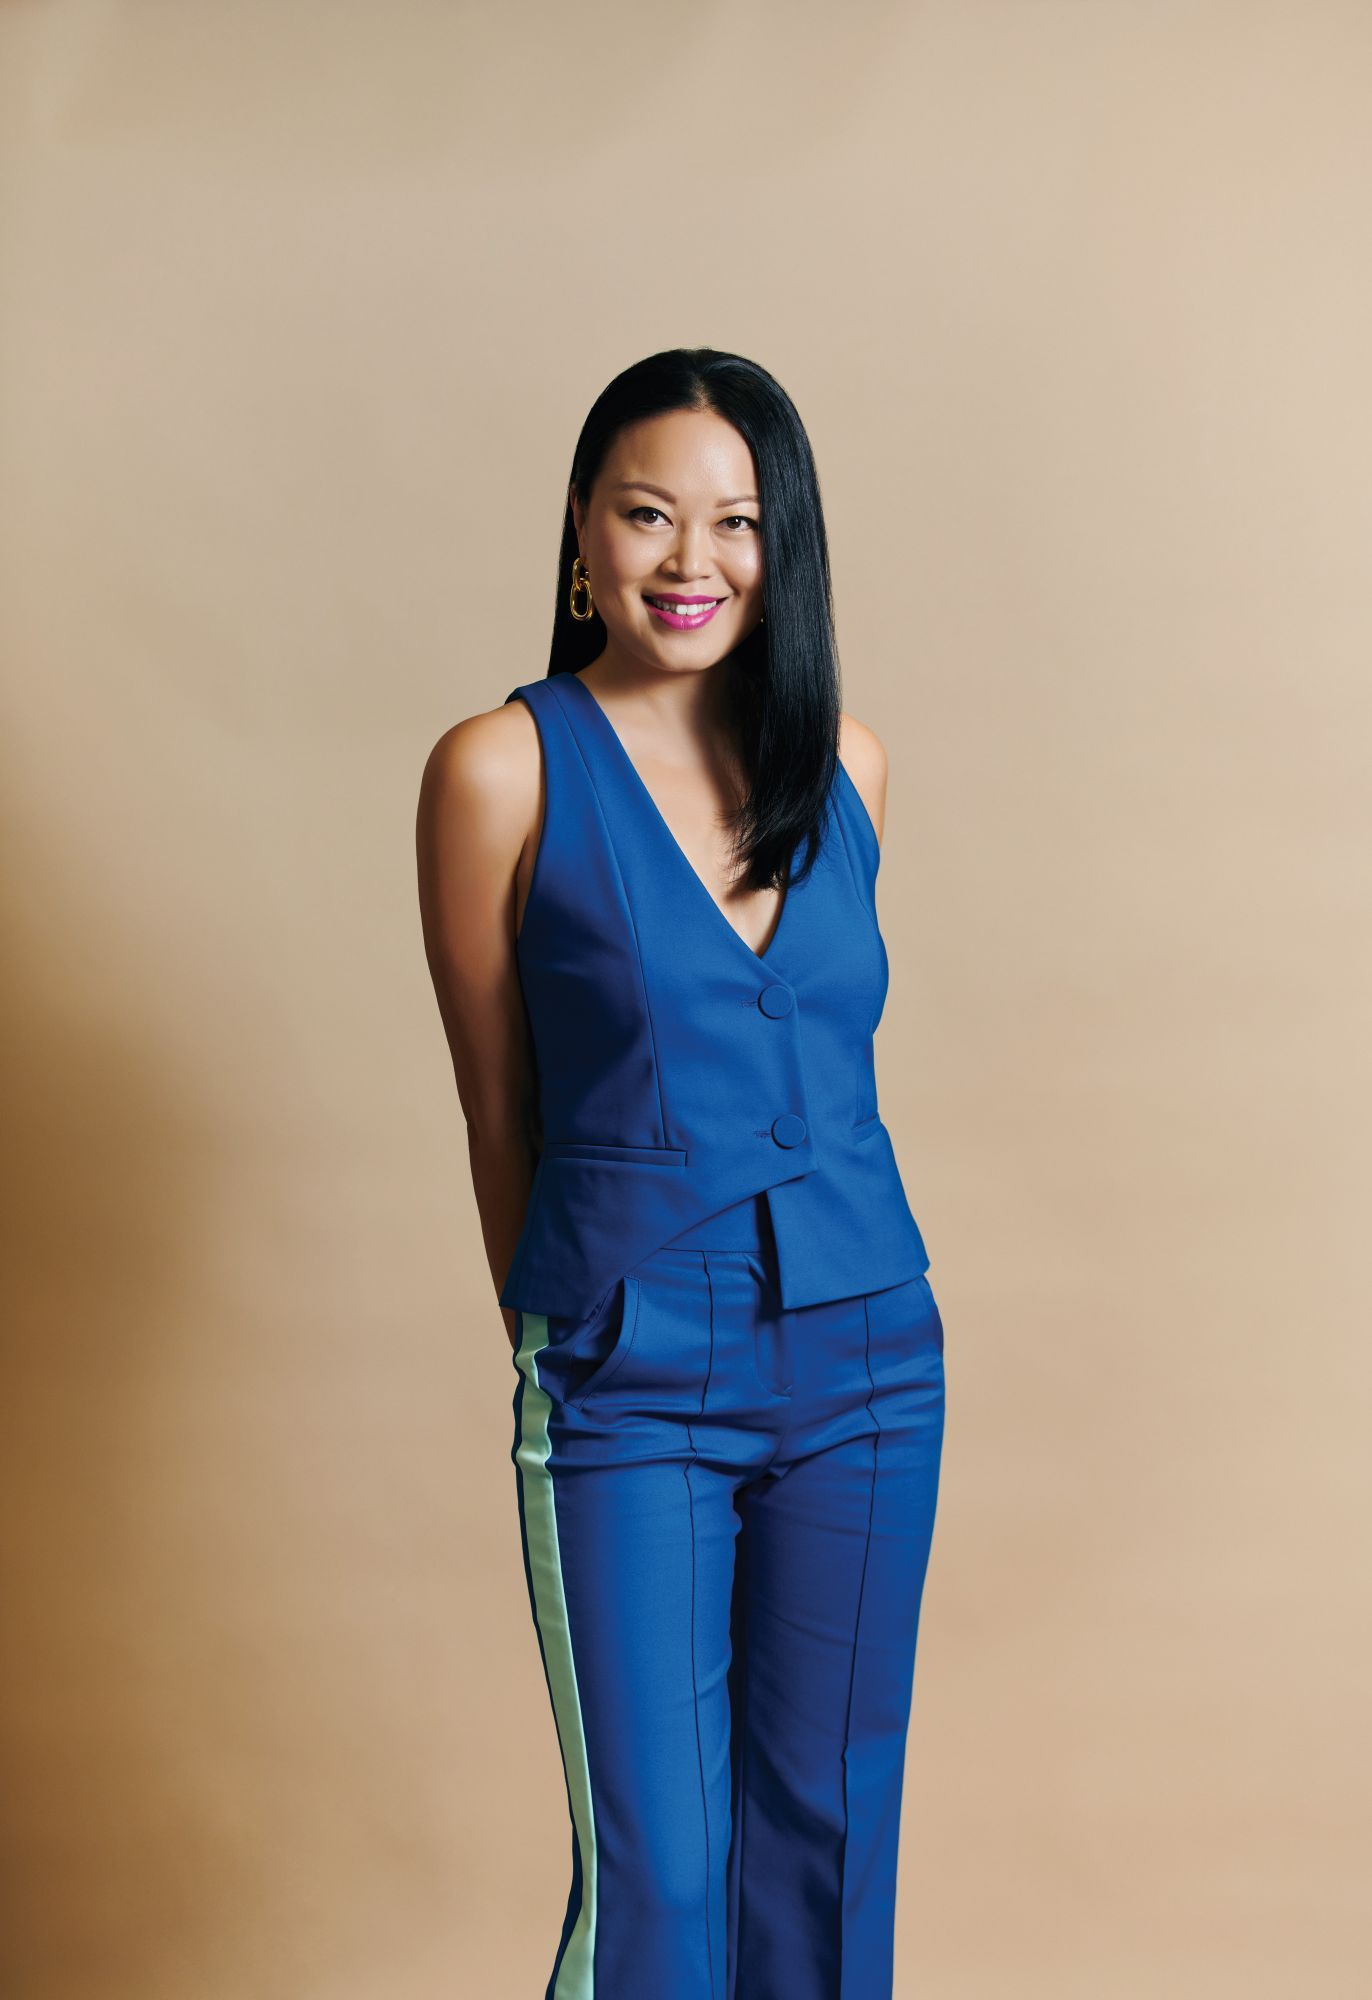 Dee Dee Chan Of The Seal Of Love Charity On Using The Power Of Education To Uplift Families